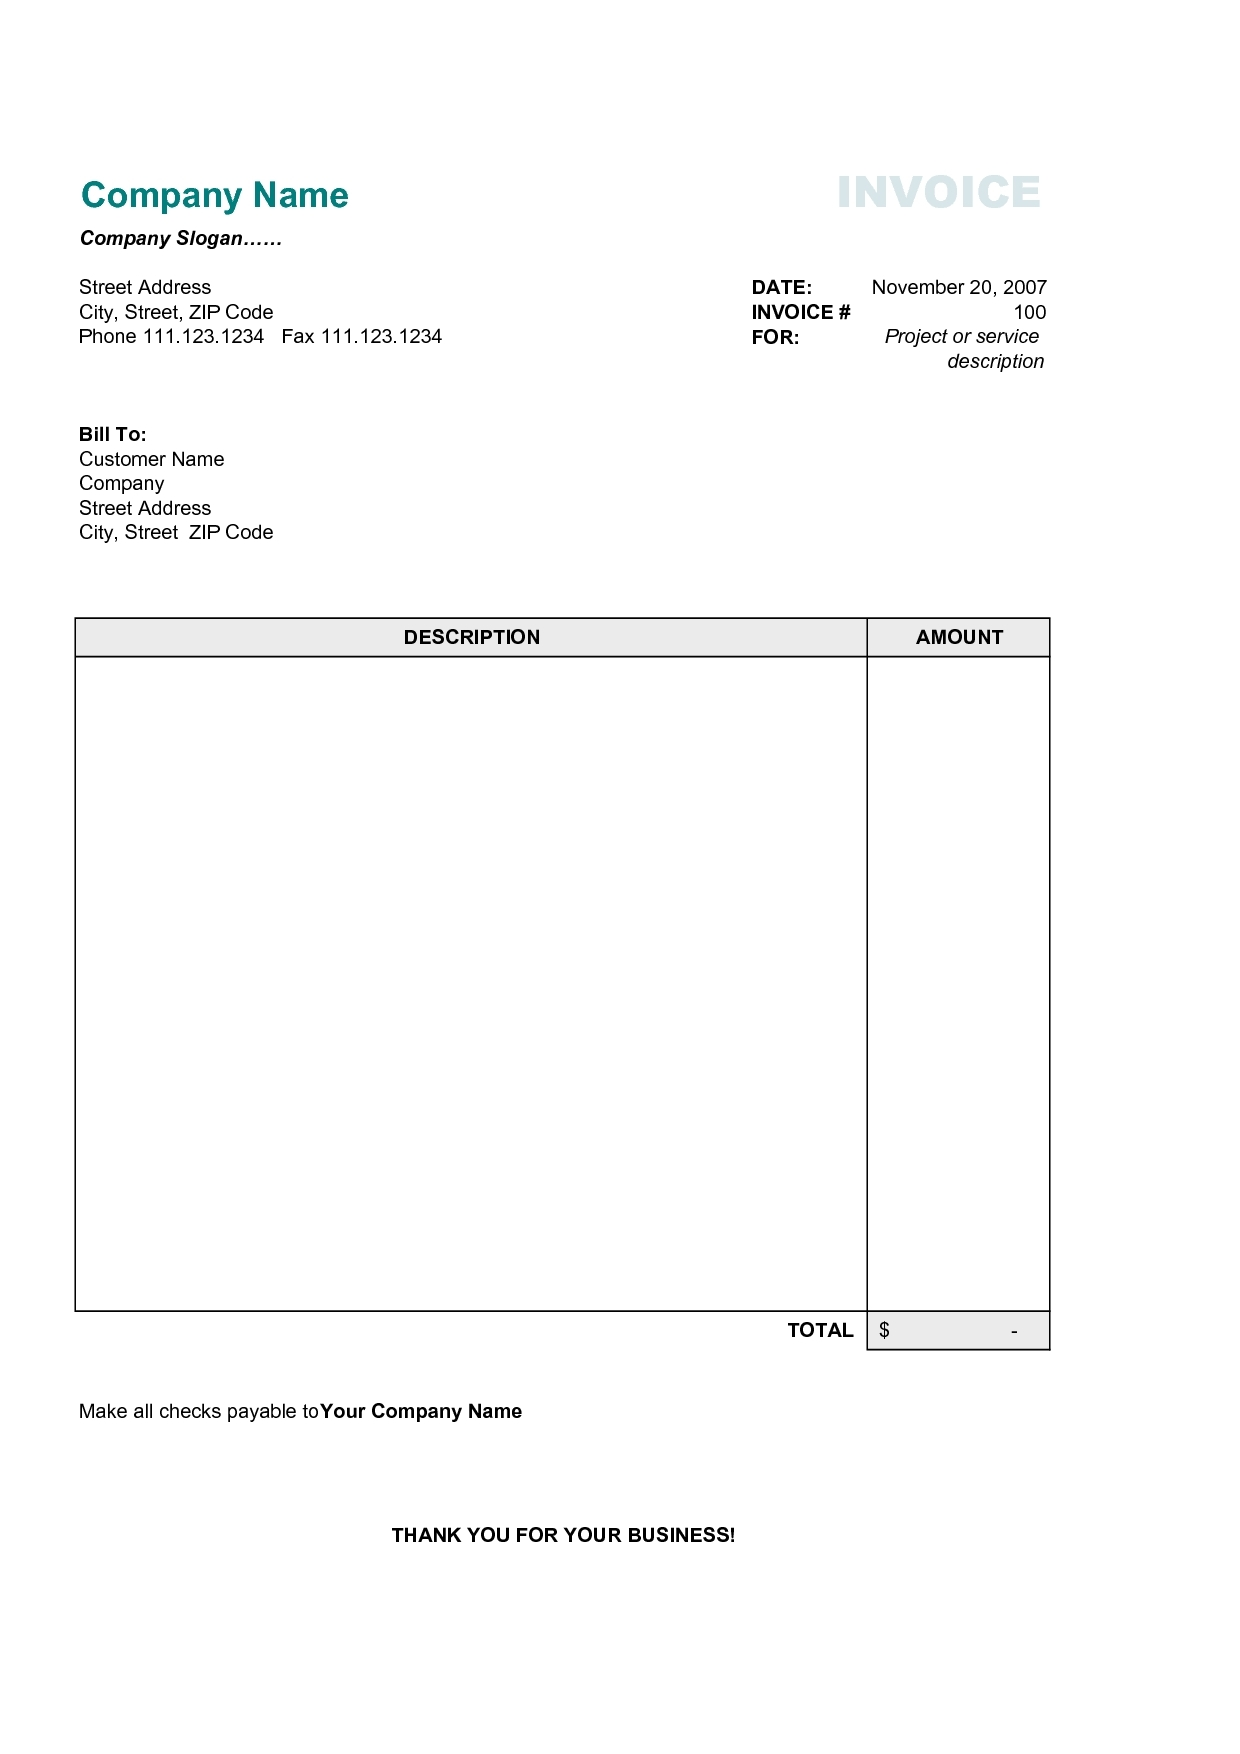 free template for invoice free templates for invoices invoice template free 2016 1240 X 1754